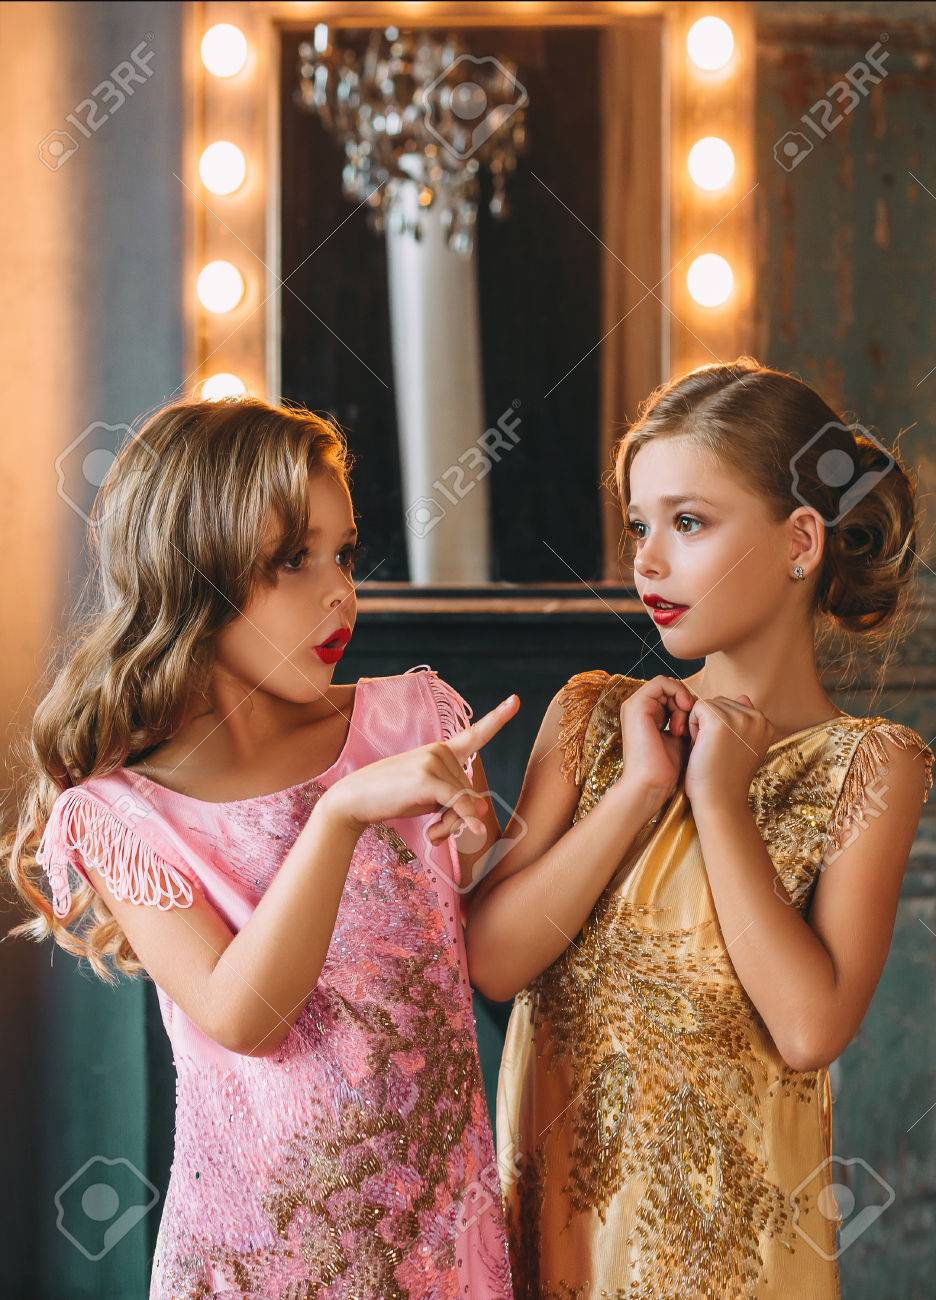 Stock Photo Two Babes In The Background Of The Mirror Animatedly Talking Beautiful Curls Luxury Vintage Dresses Fantastic Photo Session In A Beautiful